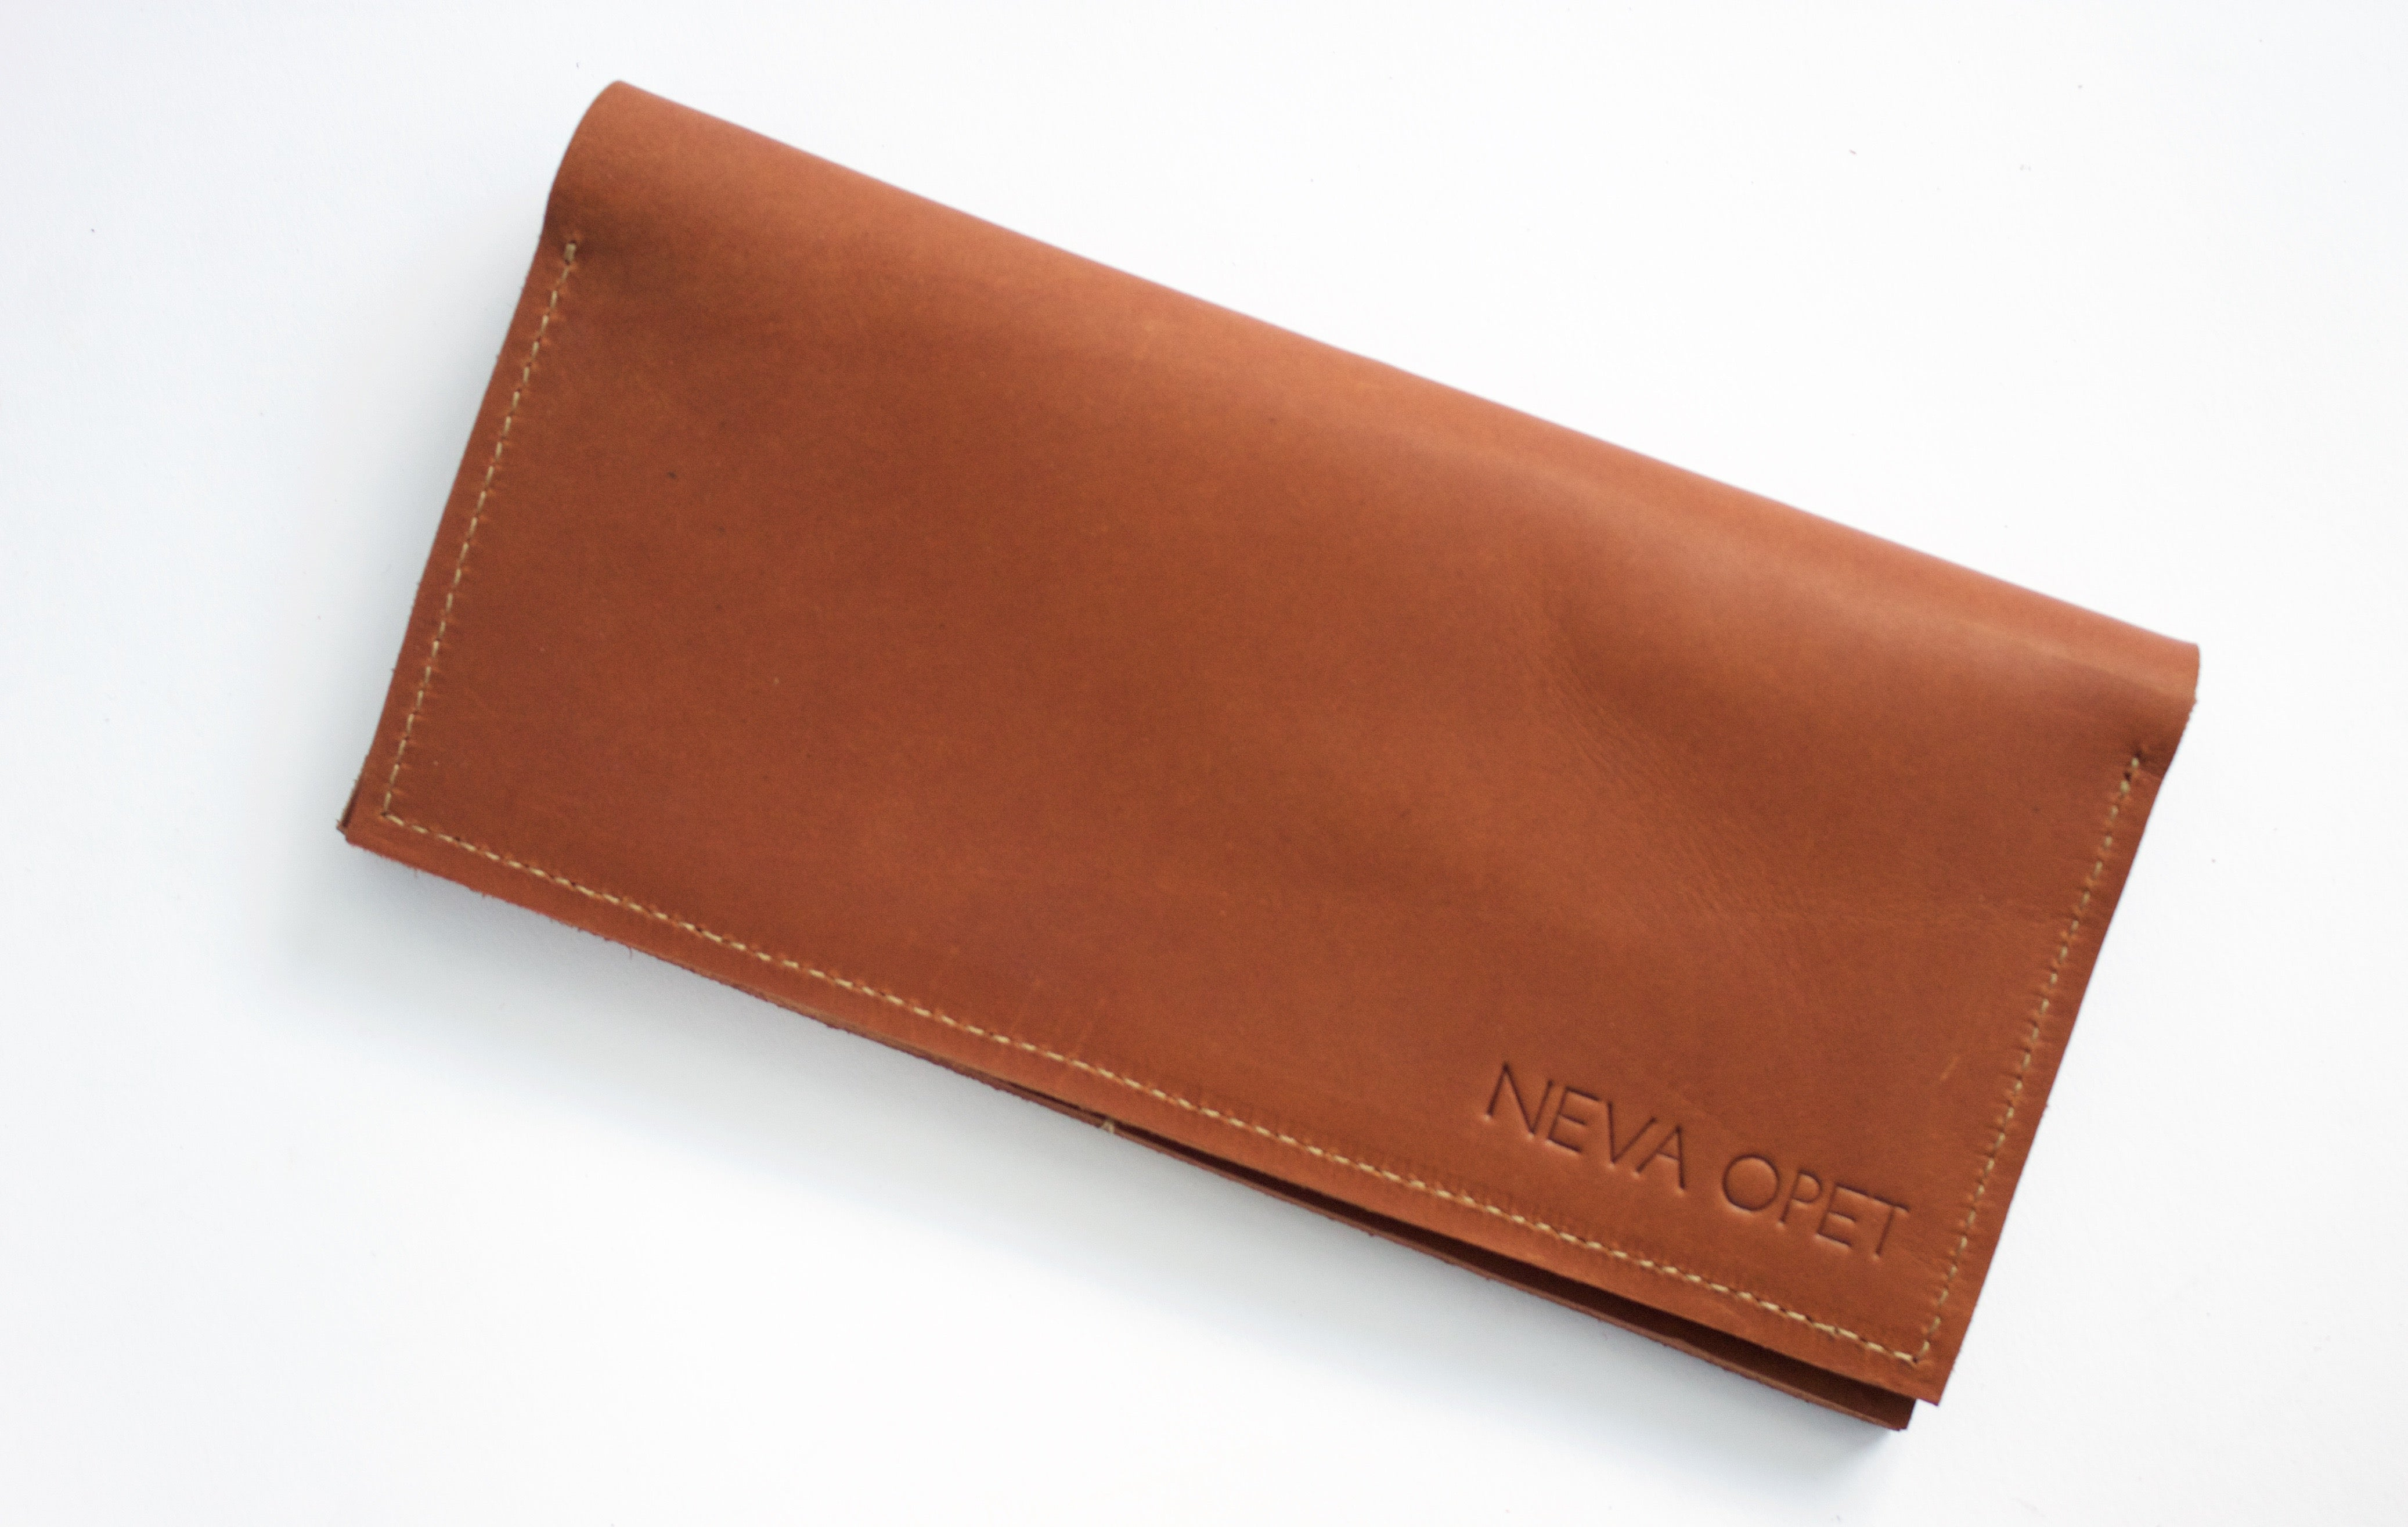 Neva Opet leather Ida Long Wallet